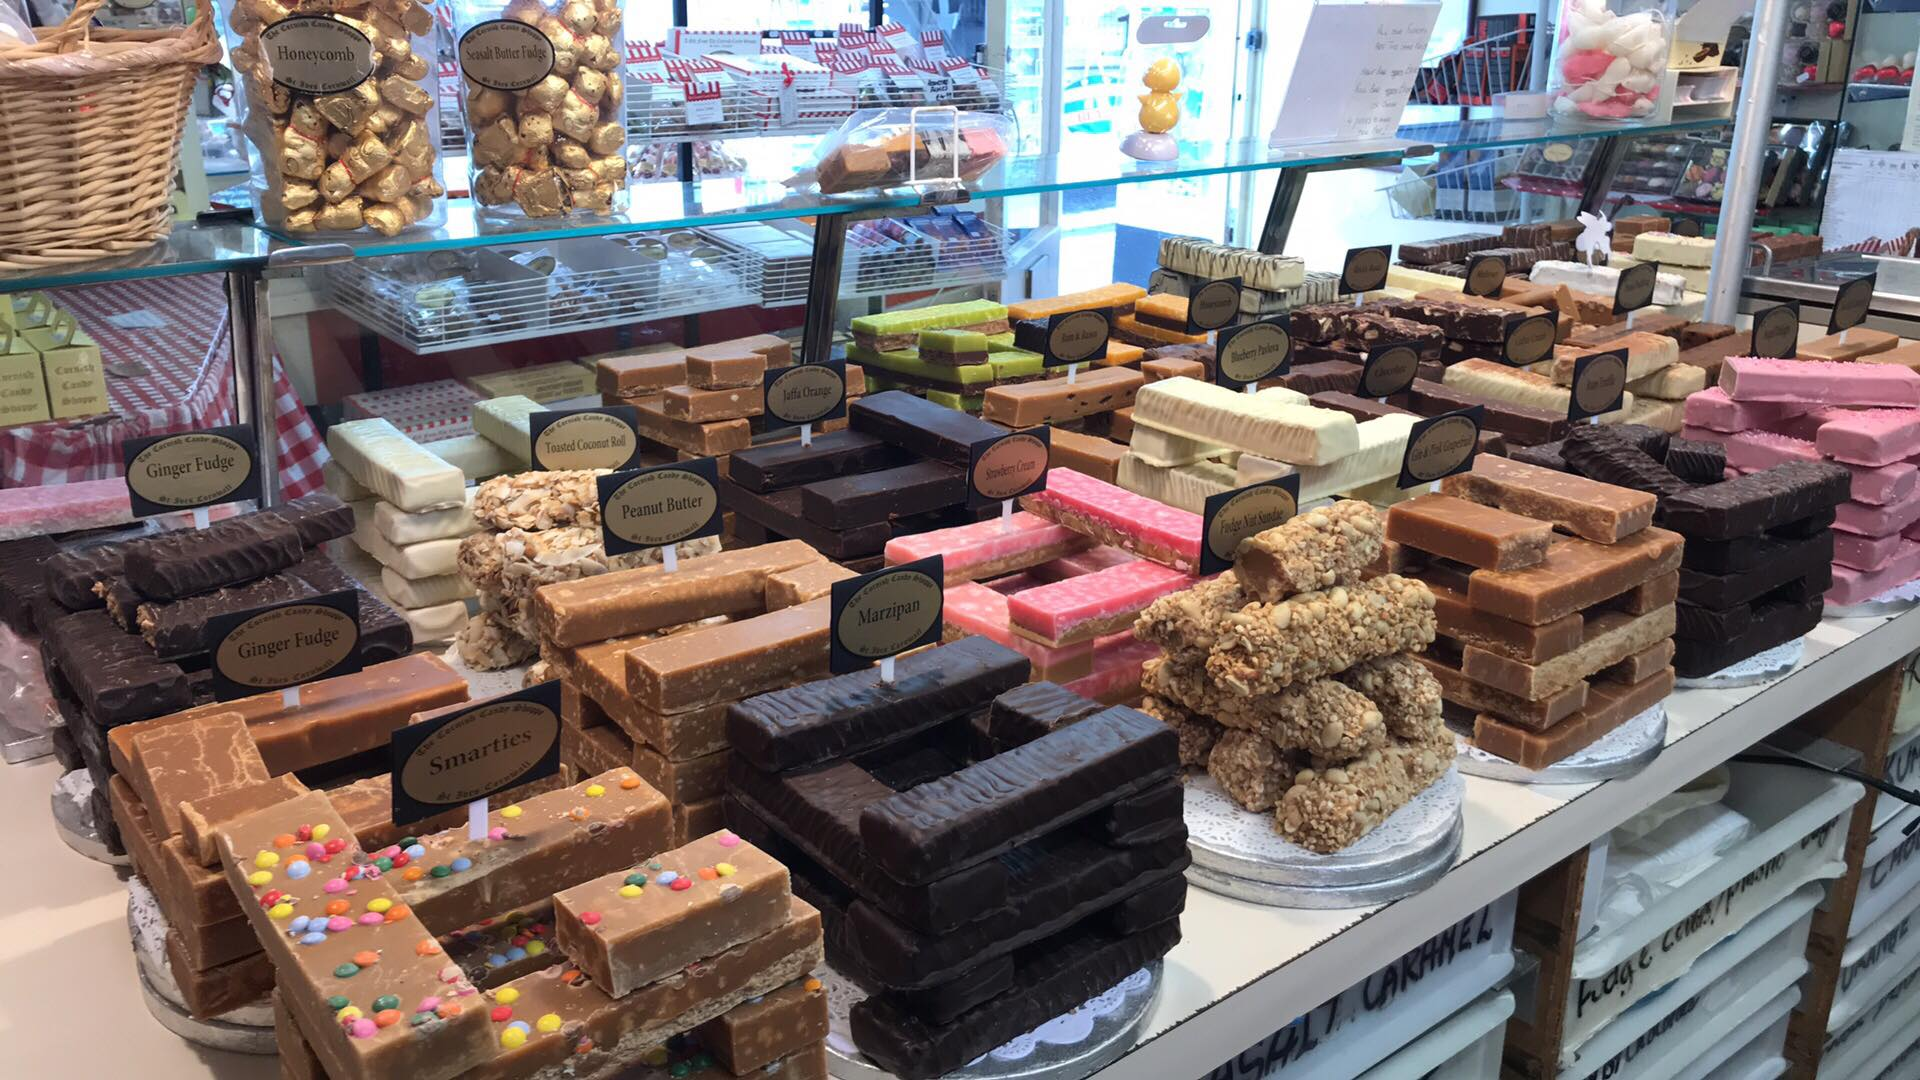 The Cornish Candy Shoppe Store Front